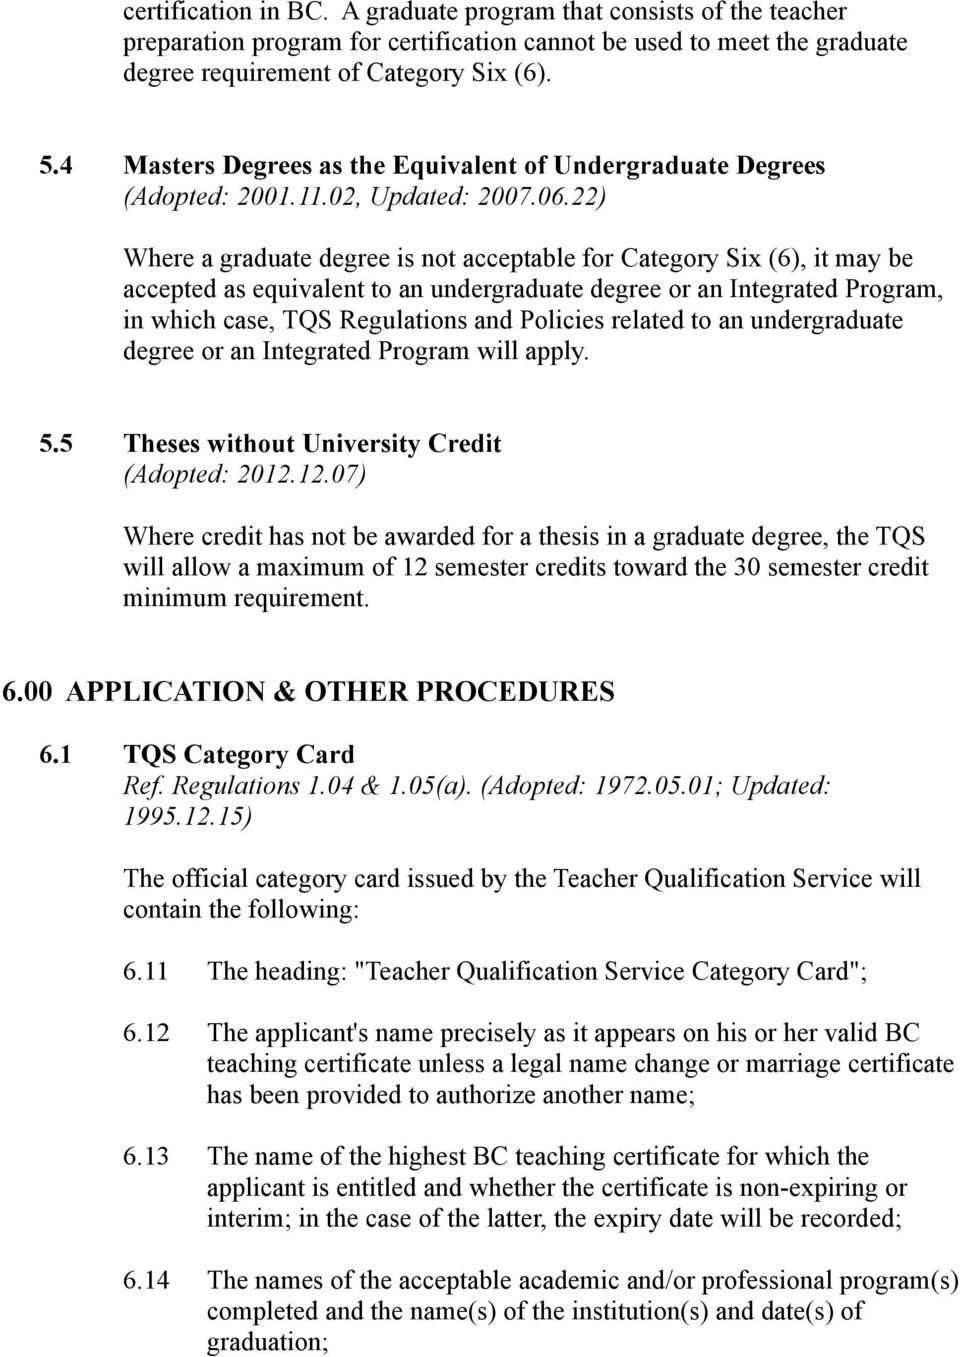 22) Where a graduate degree is not acceptable for Category Six (6), it may be accepted as equivalent to an undergraduate degree or an Integrated Program, in which case, TQS Regulations and Policies